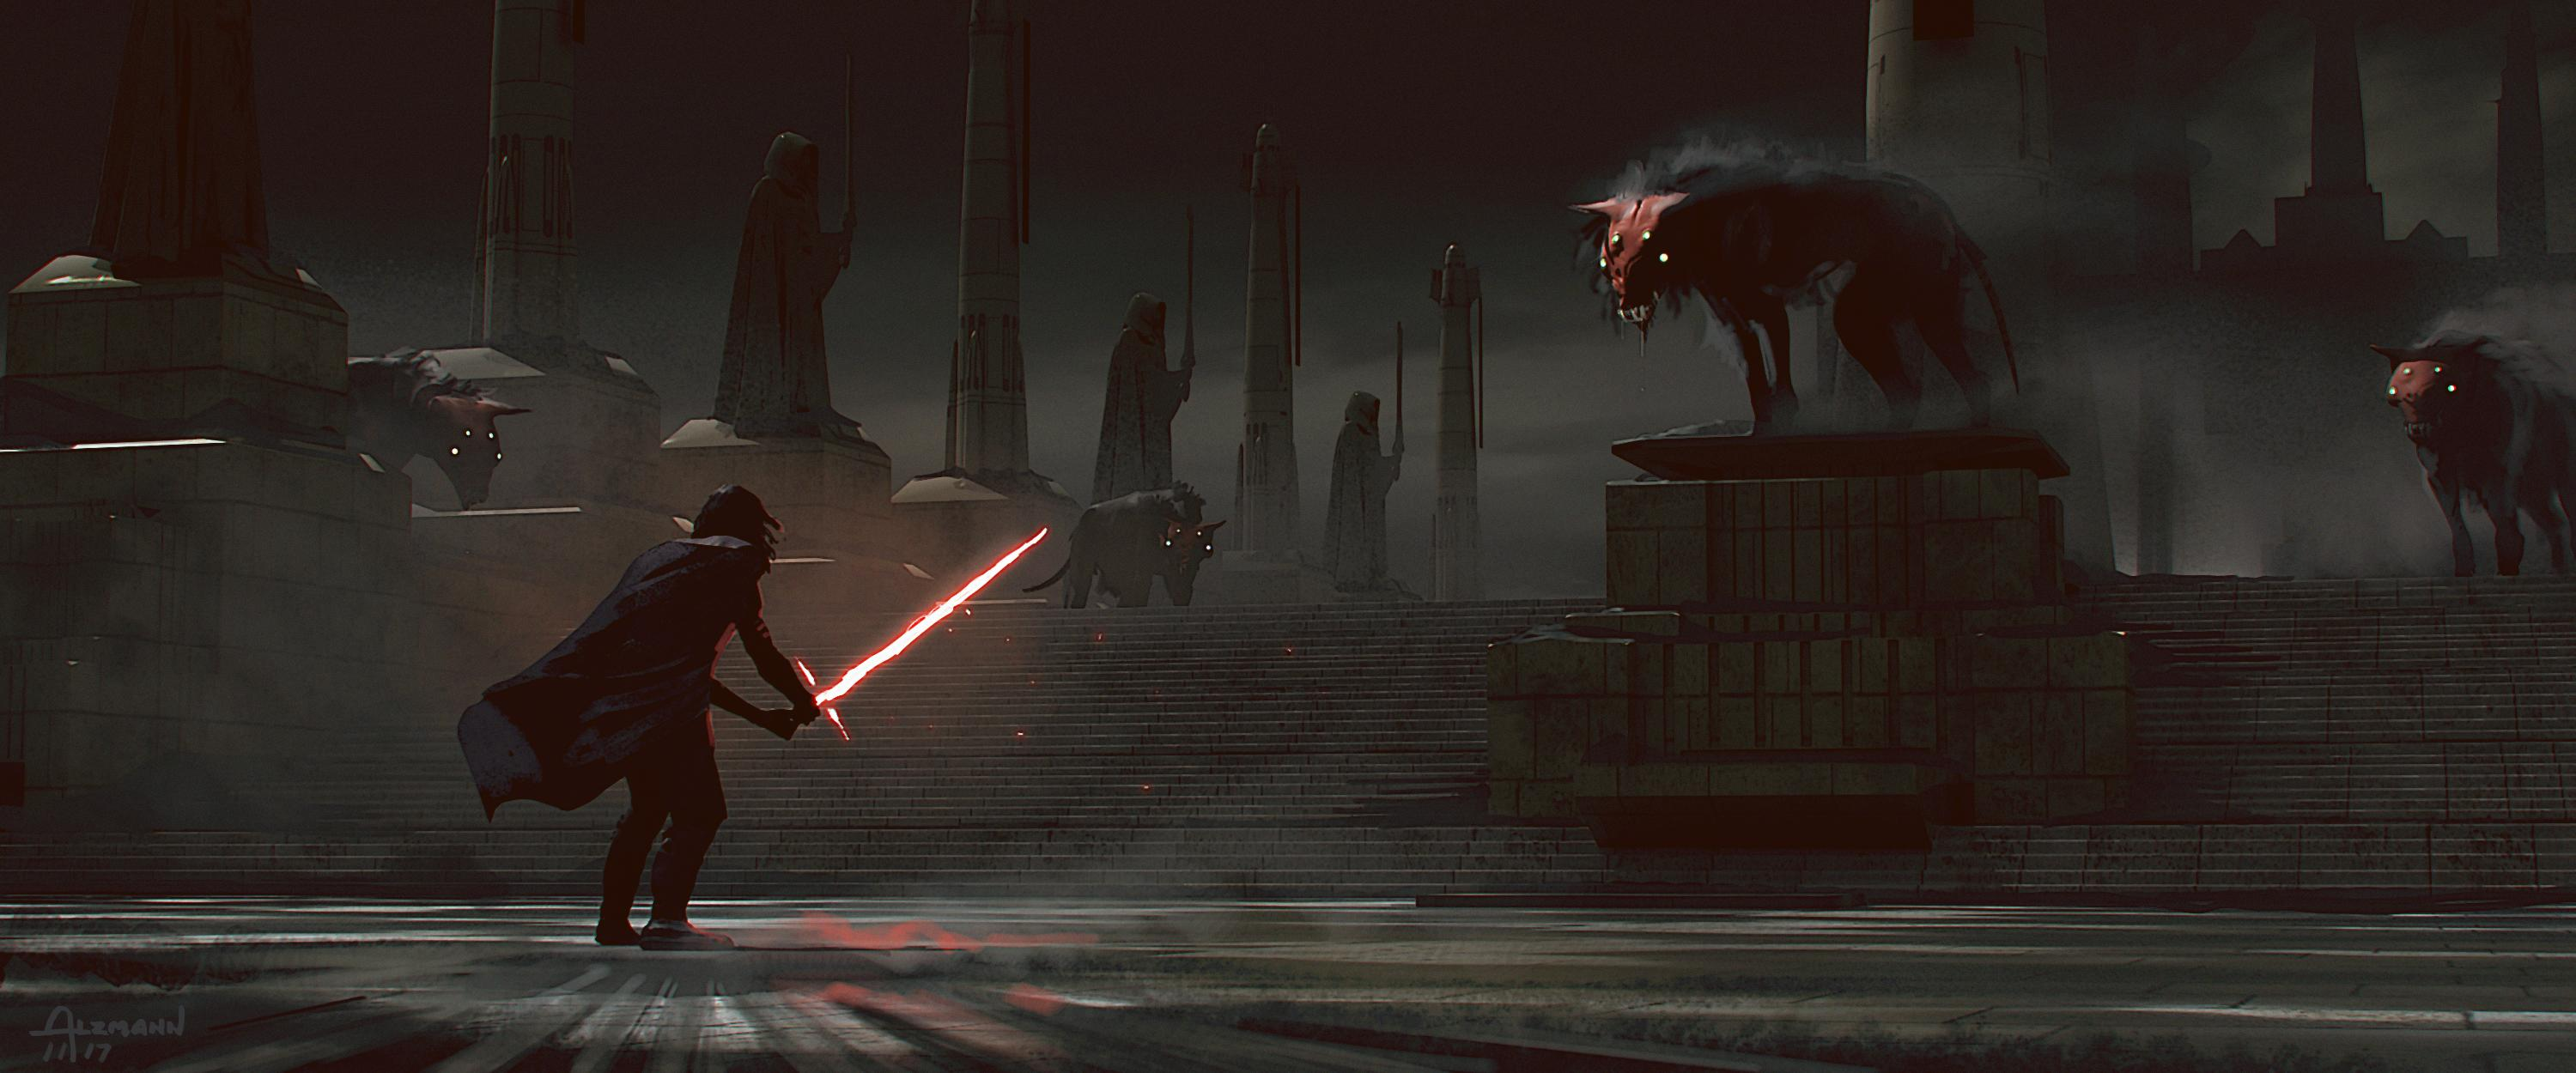 Exclusive Look At Star Wars The Rise Of Skywalker Concept Art